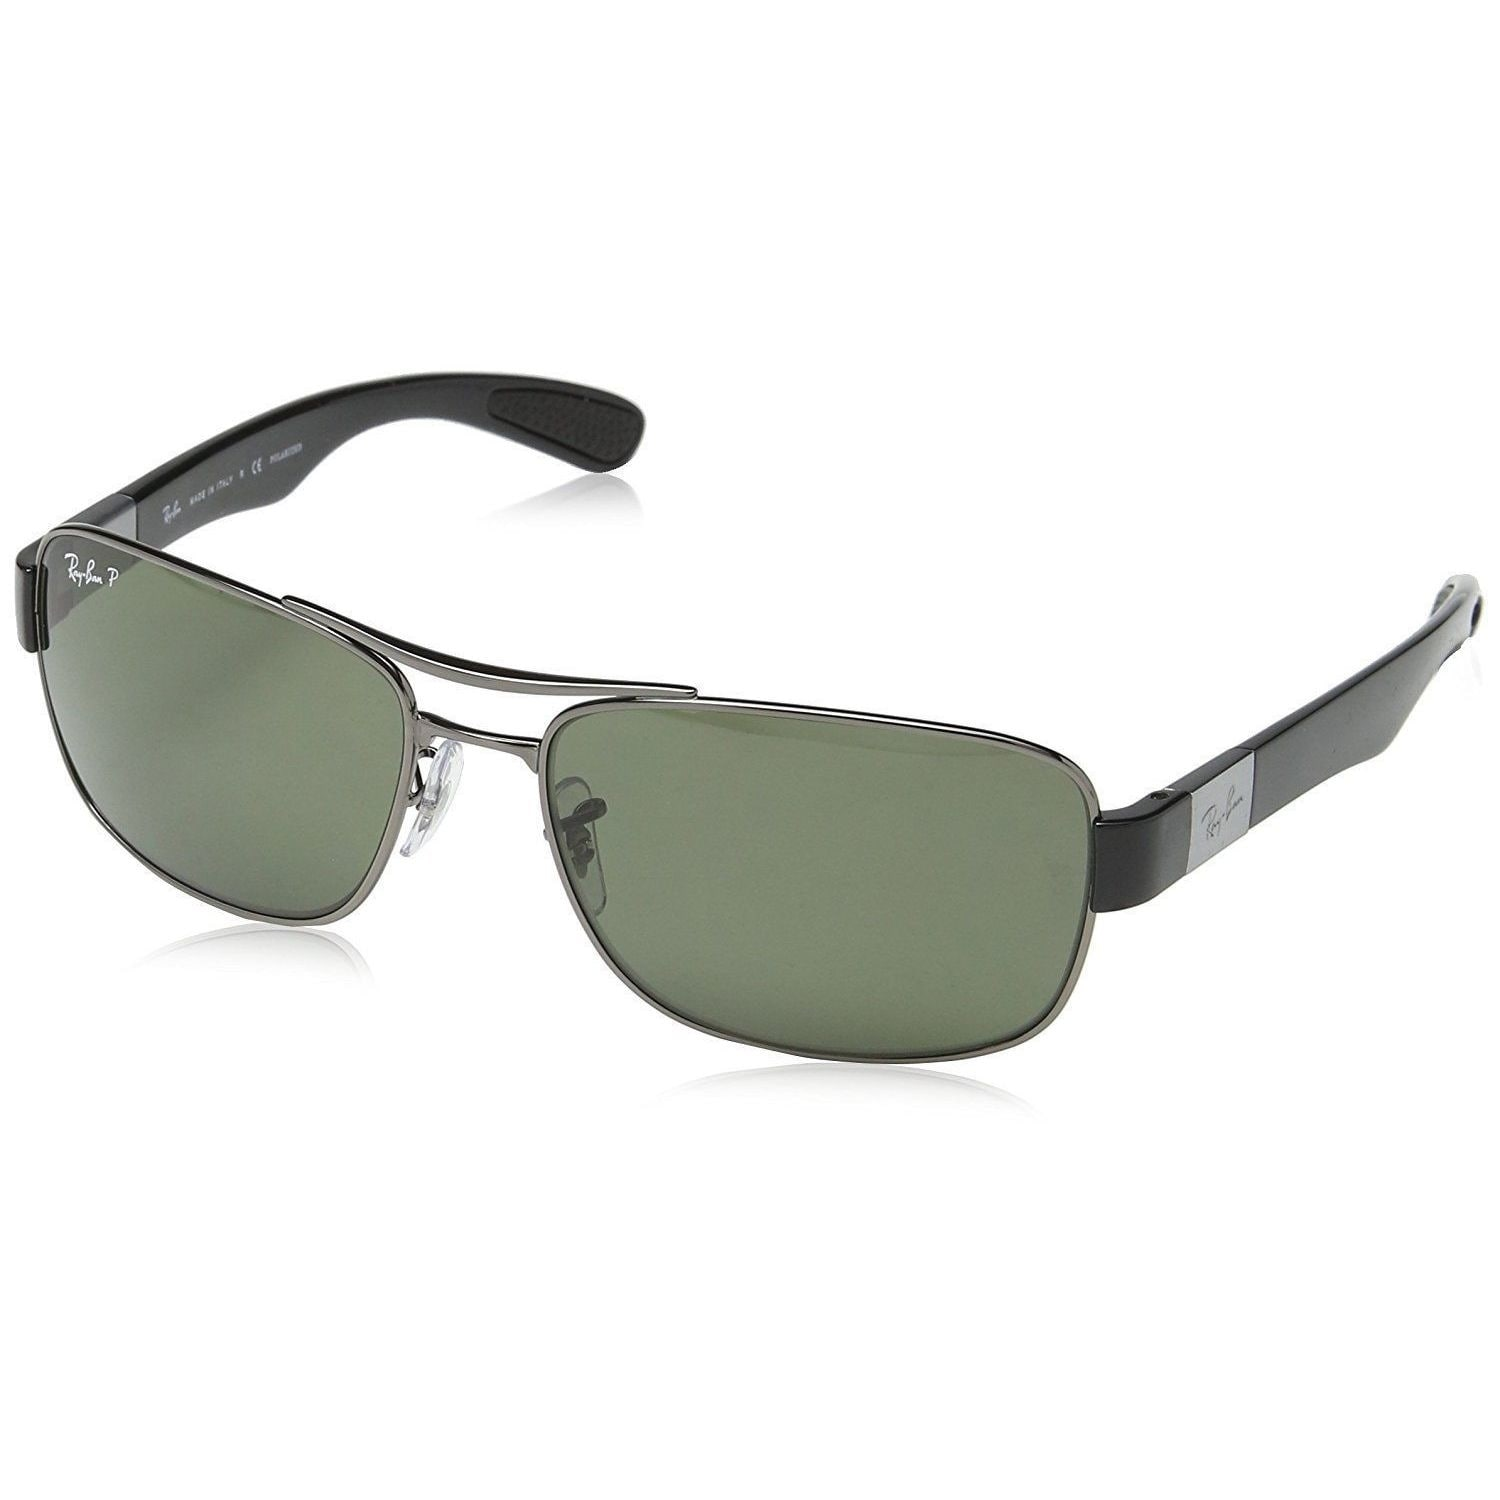 af76b59452a1 Shop Ray-Ban RB3522 Men s Gunmetal Frame Polarized Green 64mm Lens  Sunglasses - Free Shipping Today - Overstock.com - 15370429